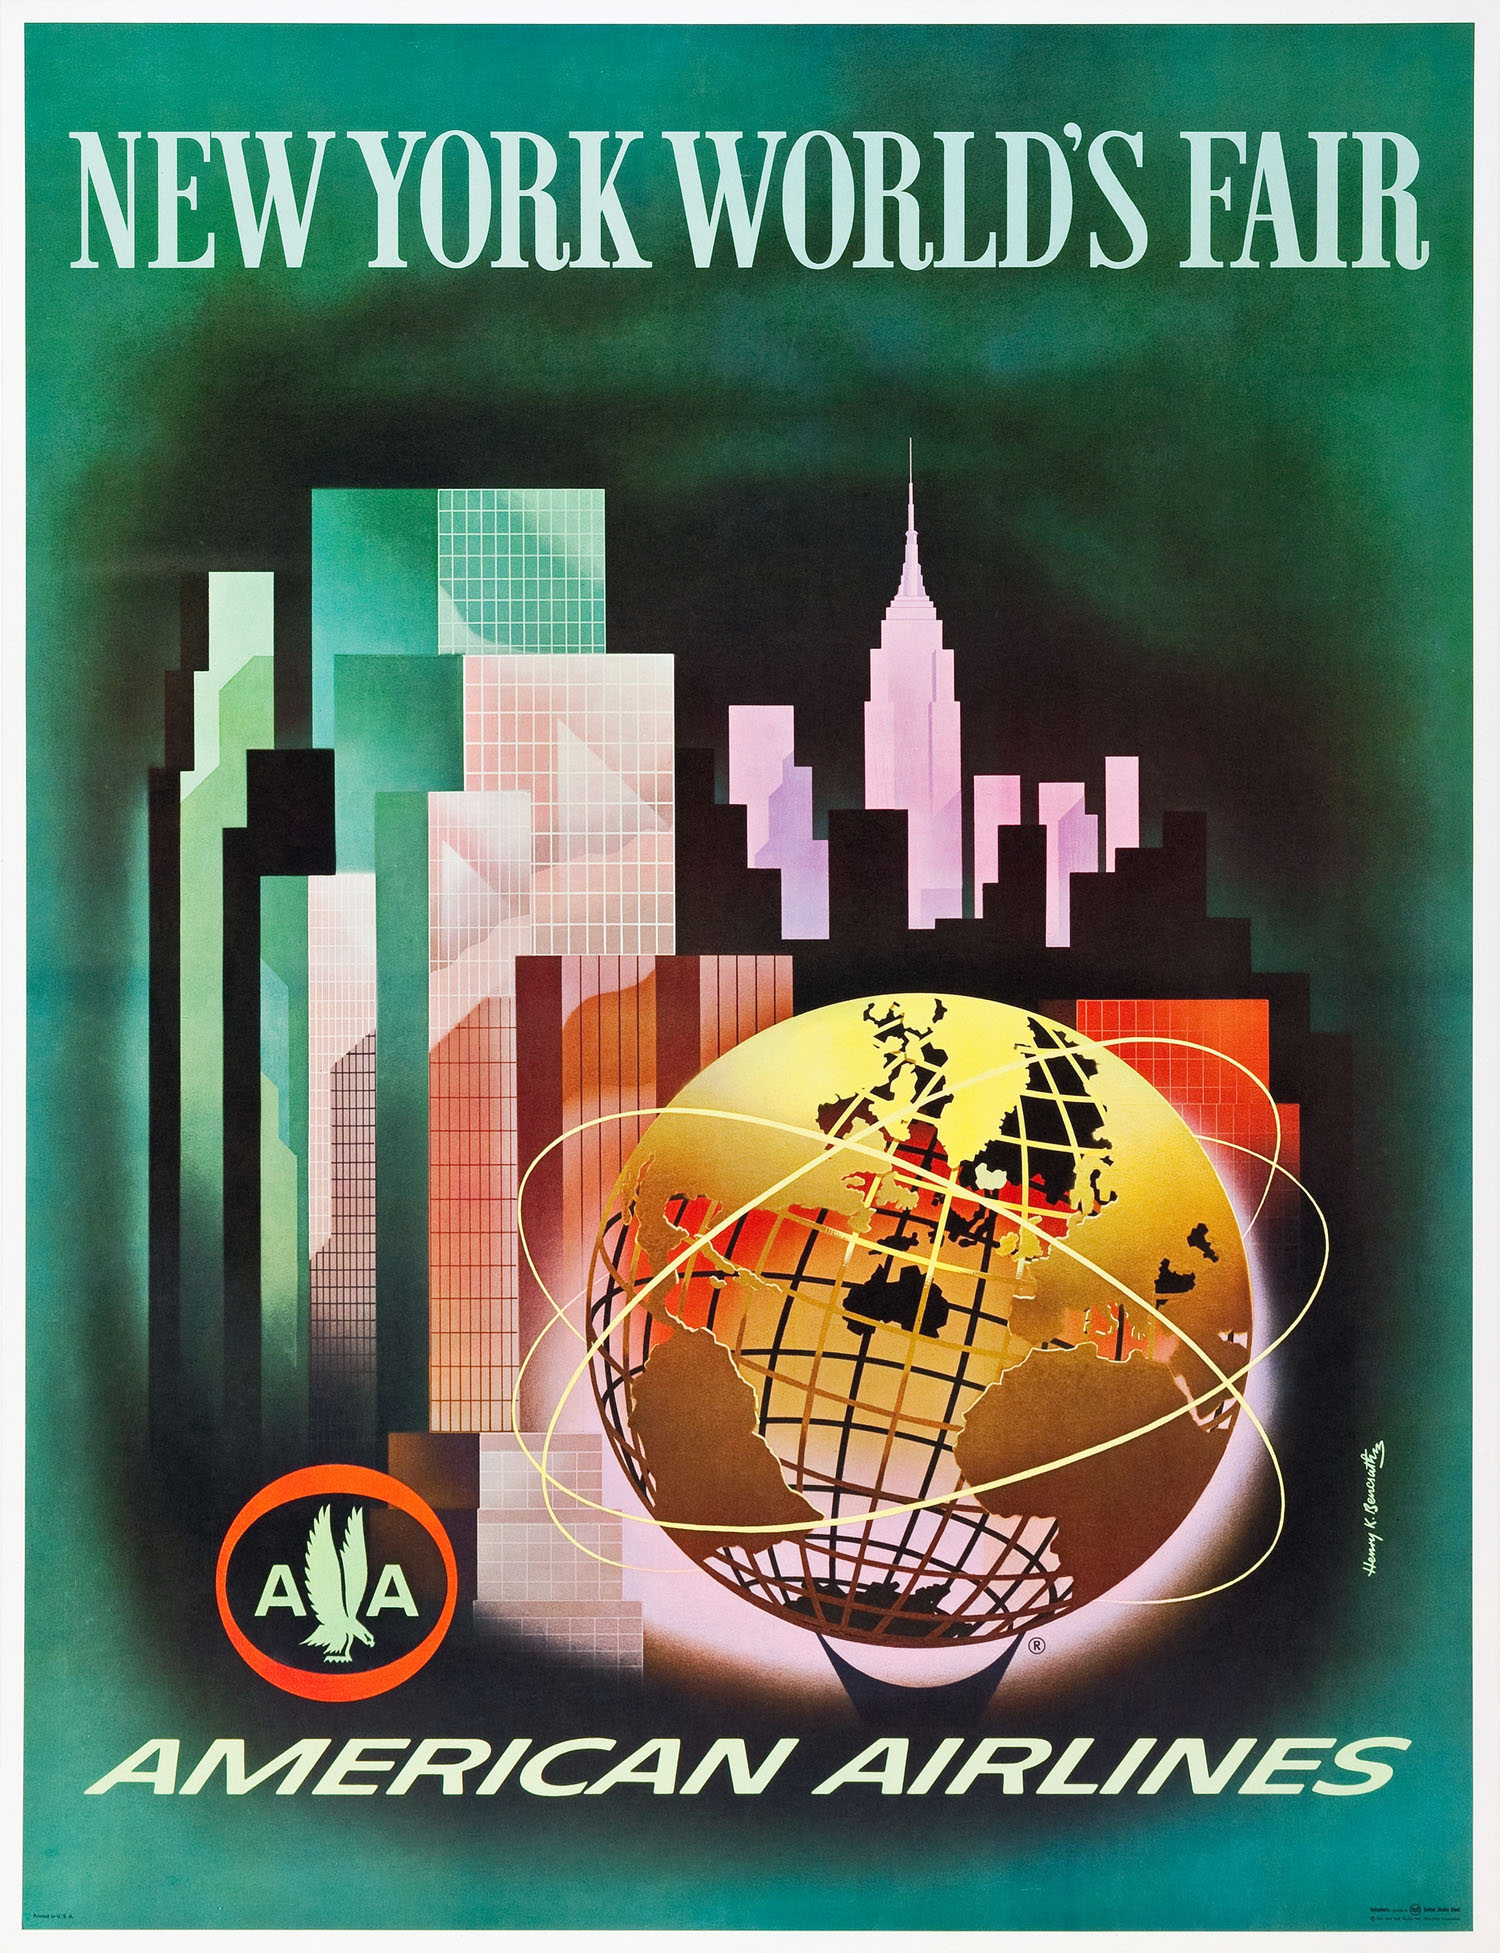 American Airlines 1964-65 World's Fair Poster